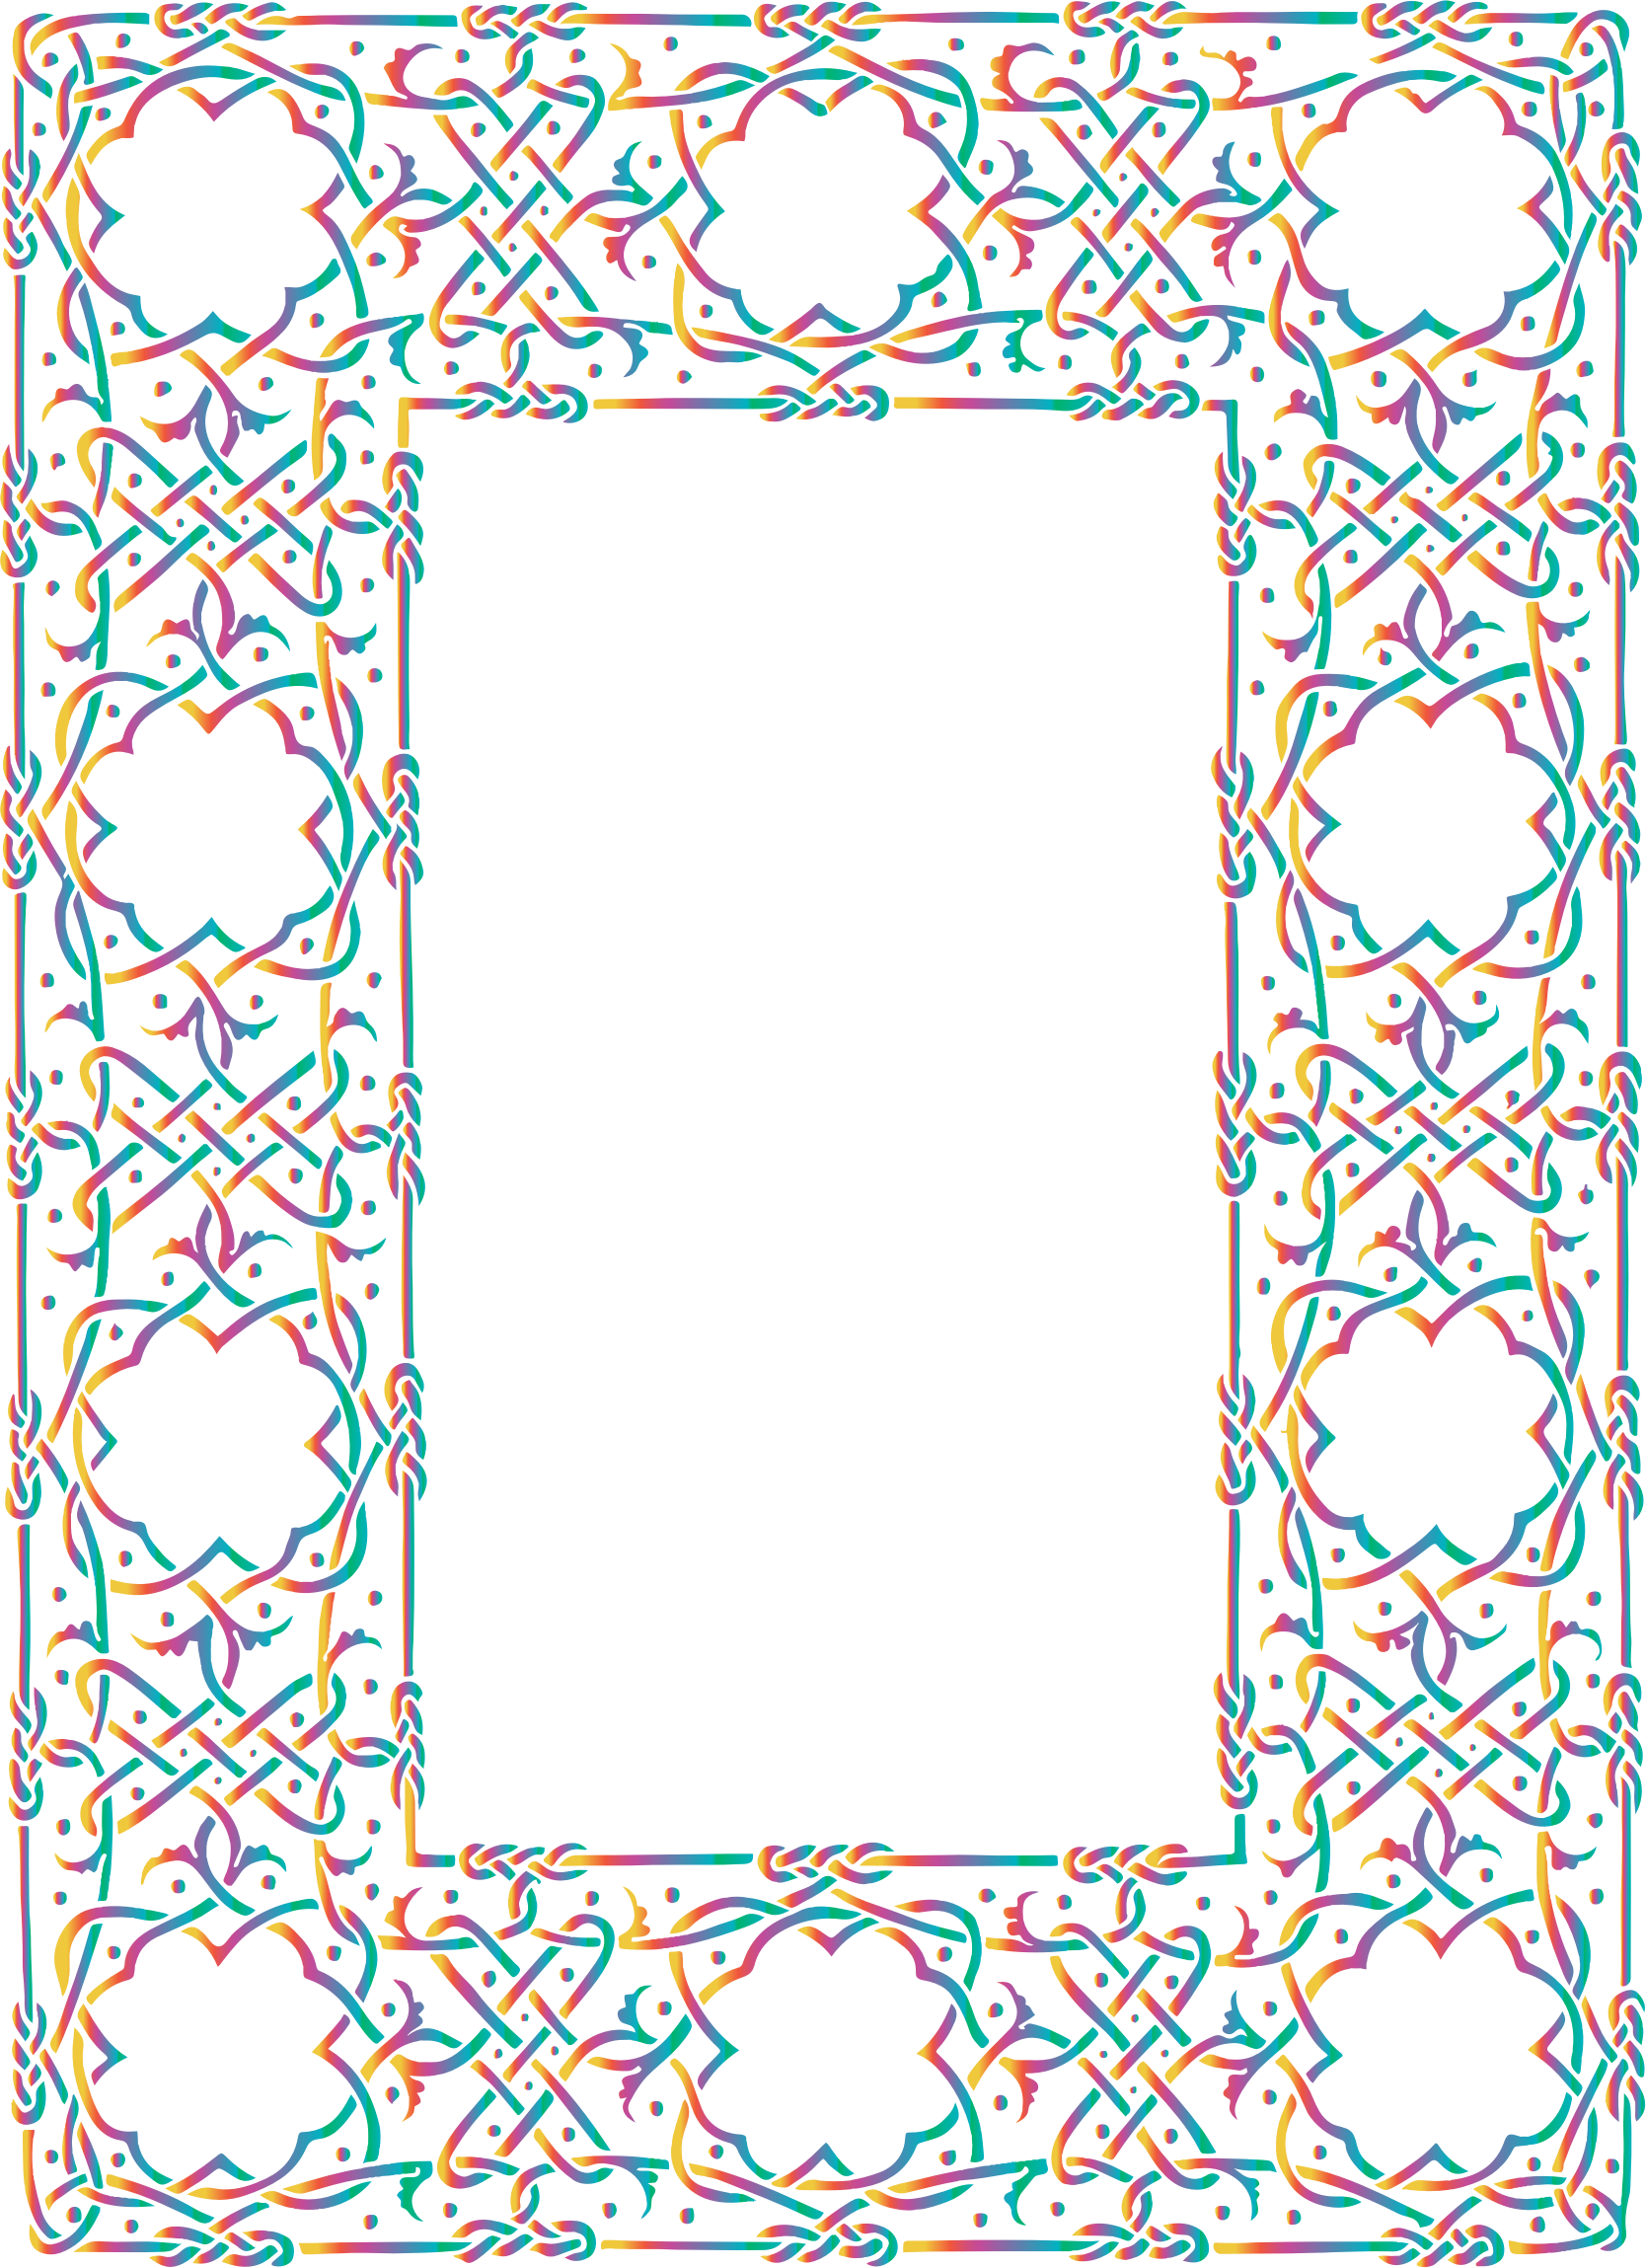 Prismatic Ornate Geometric Frame 2 No Background by GDJ